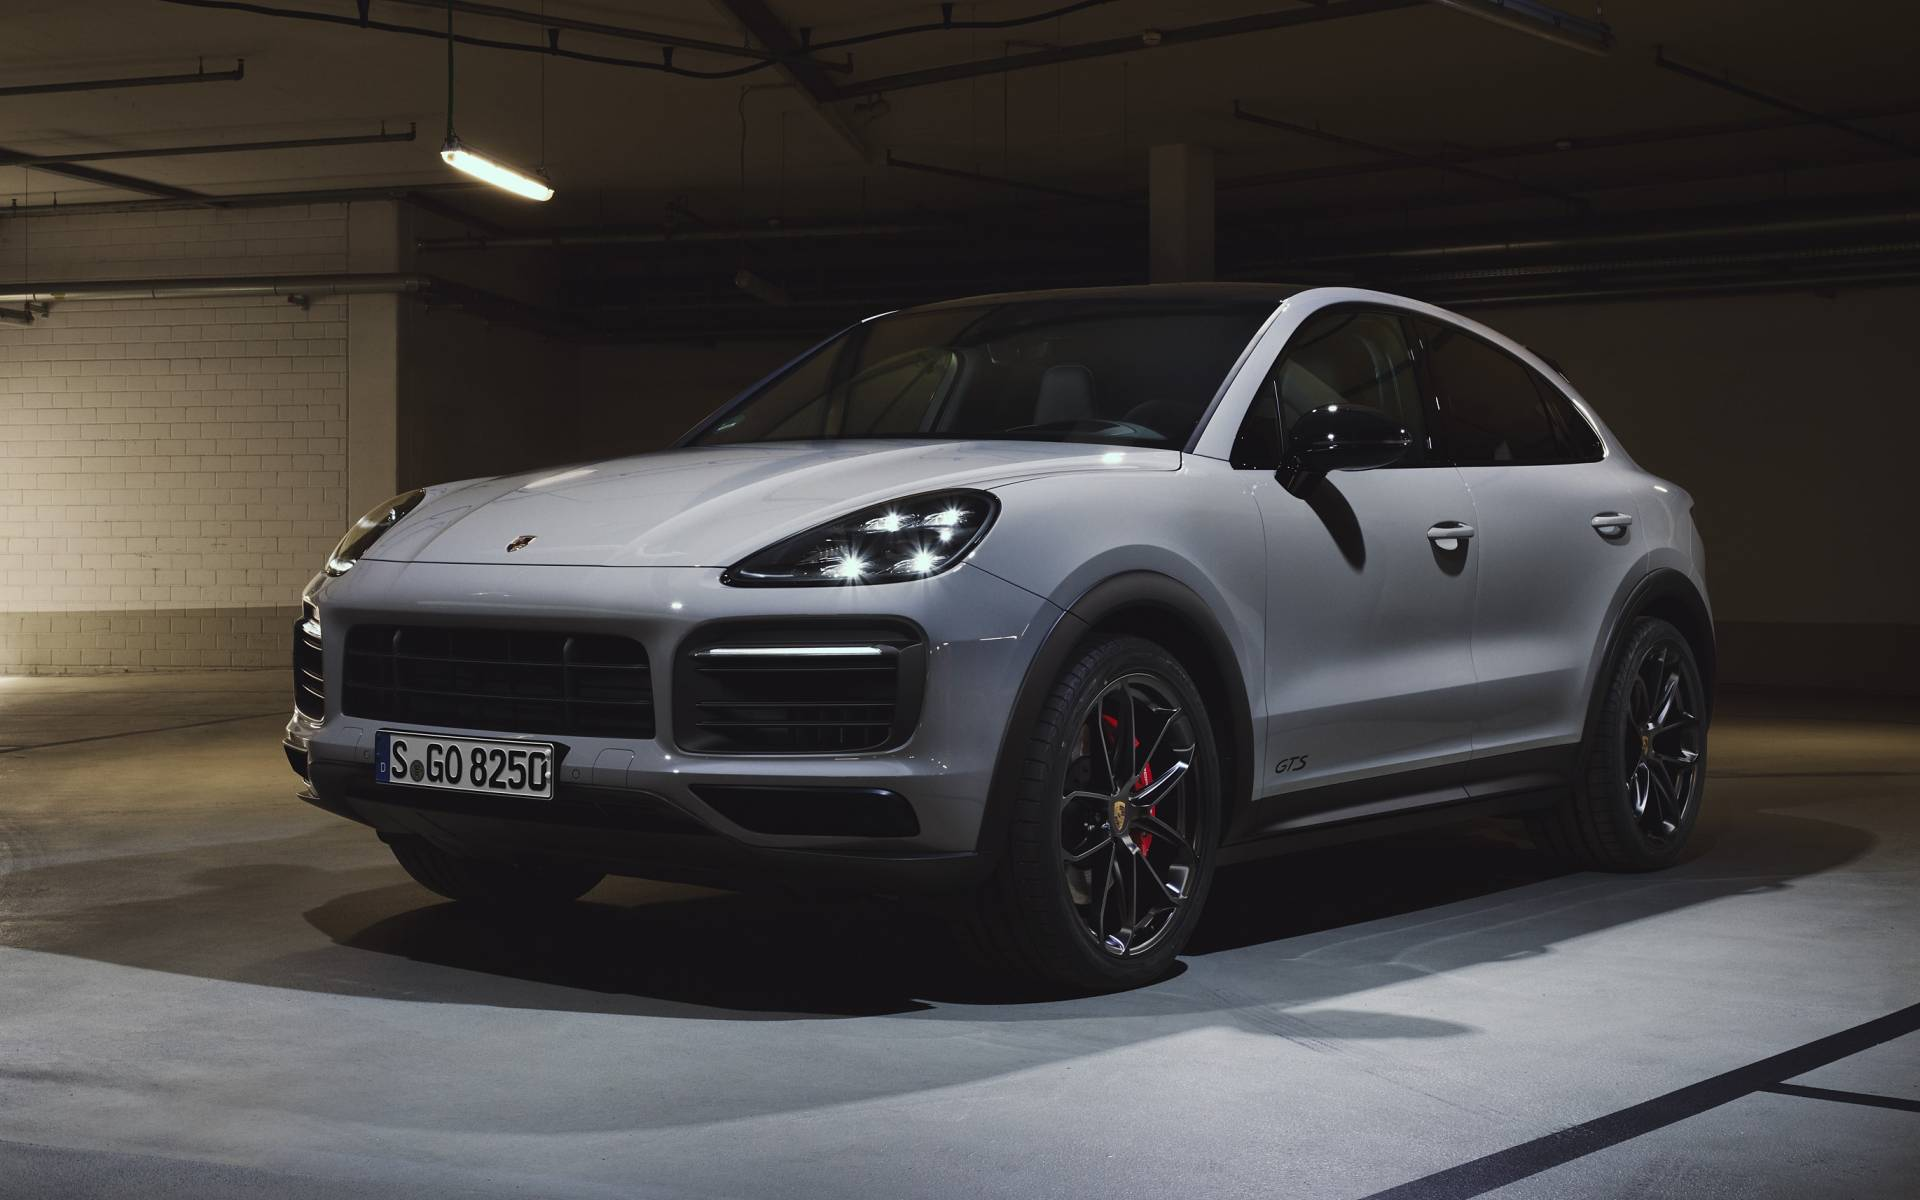 2021 Porsche Cayenne Gts Arrives With A Twin Turbo V8 The Car Guide